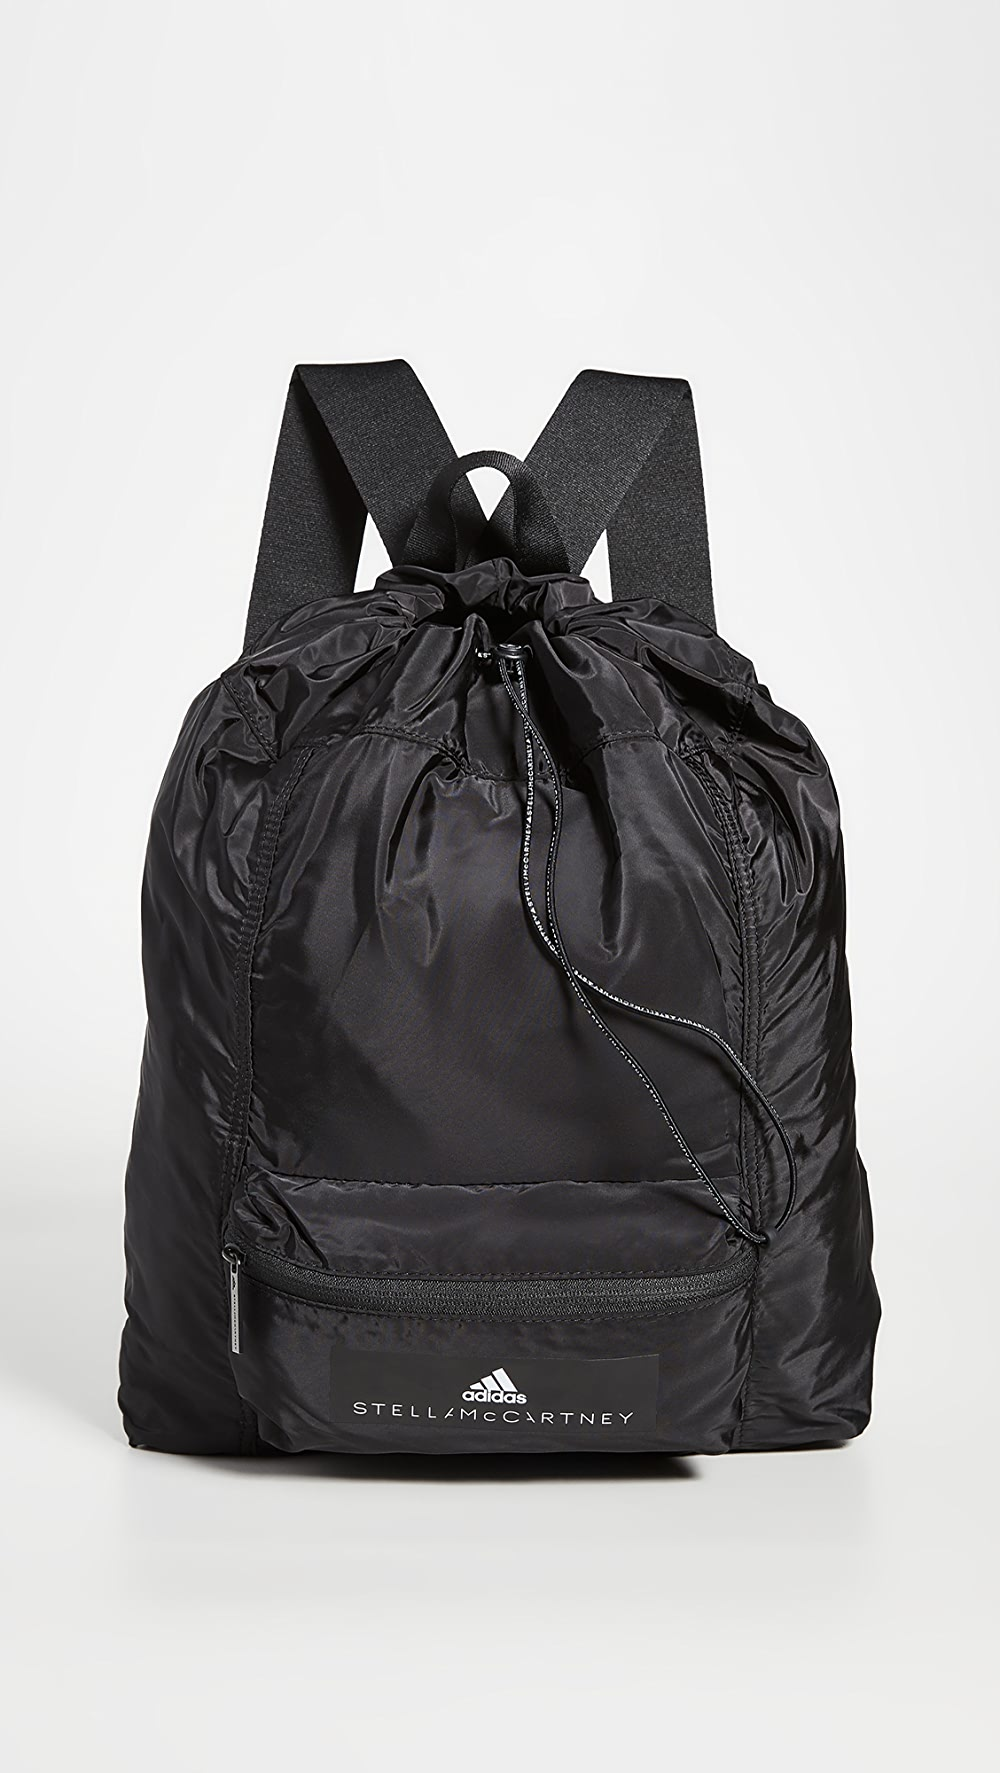 Objective Adidas By Stella Mccartney - Gymsack To Assure Years Of Trouble-Free Service